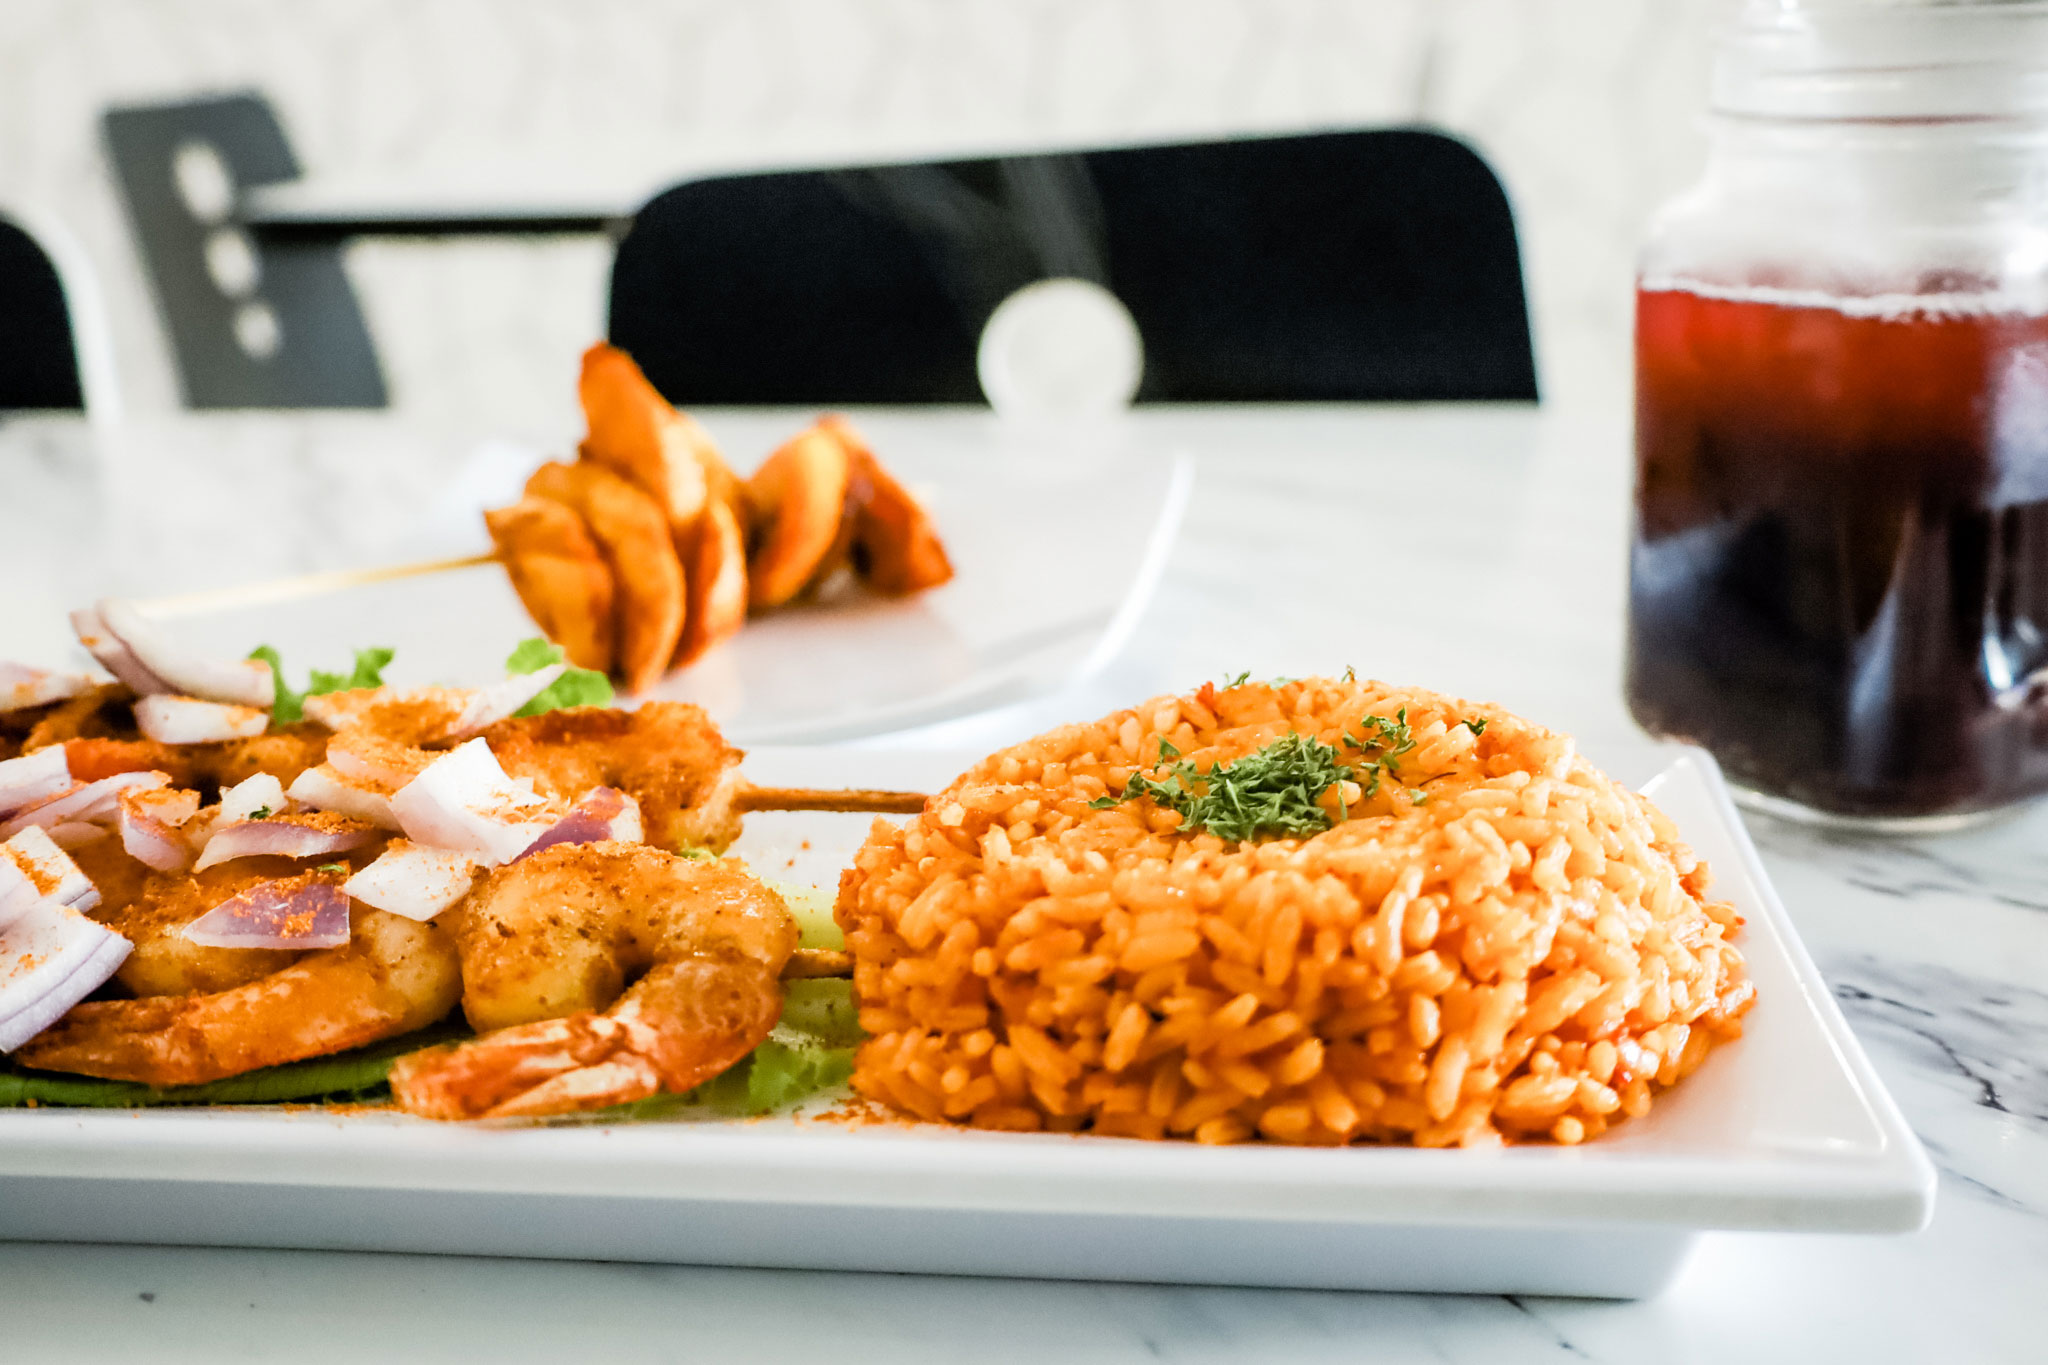 A plate of rice and grilled shrimps.